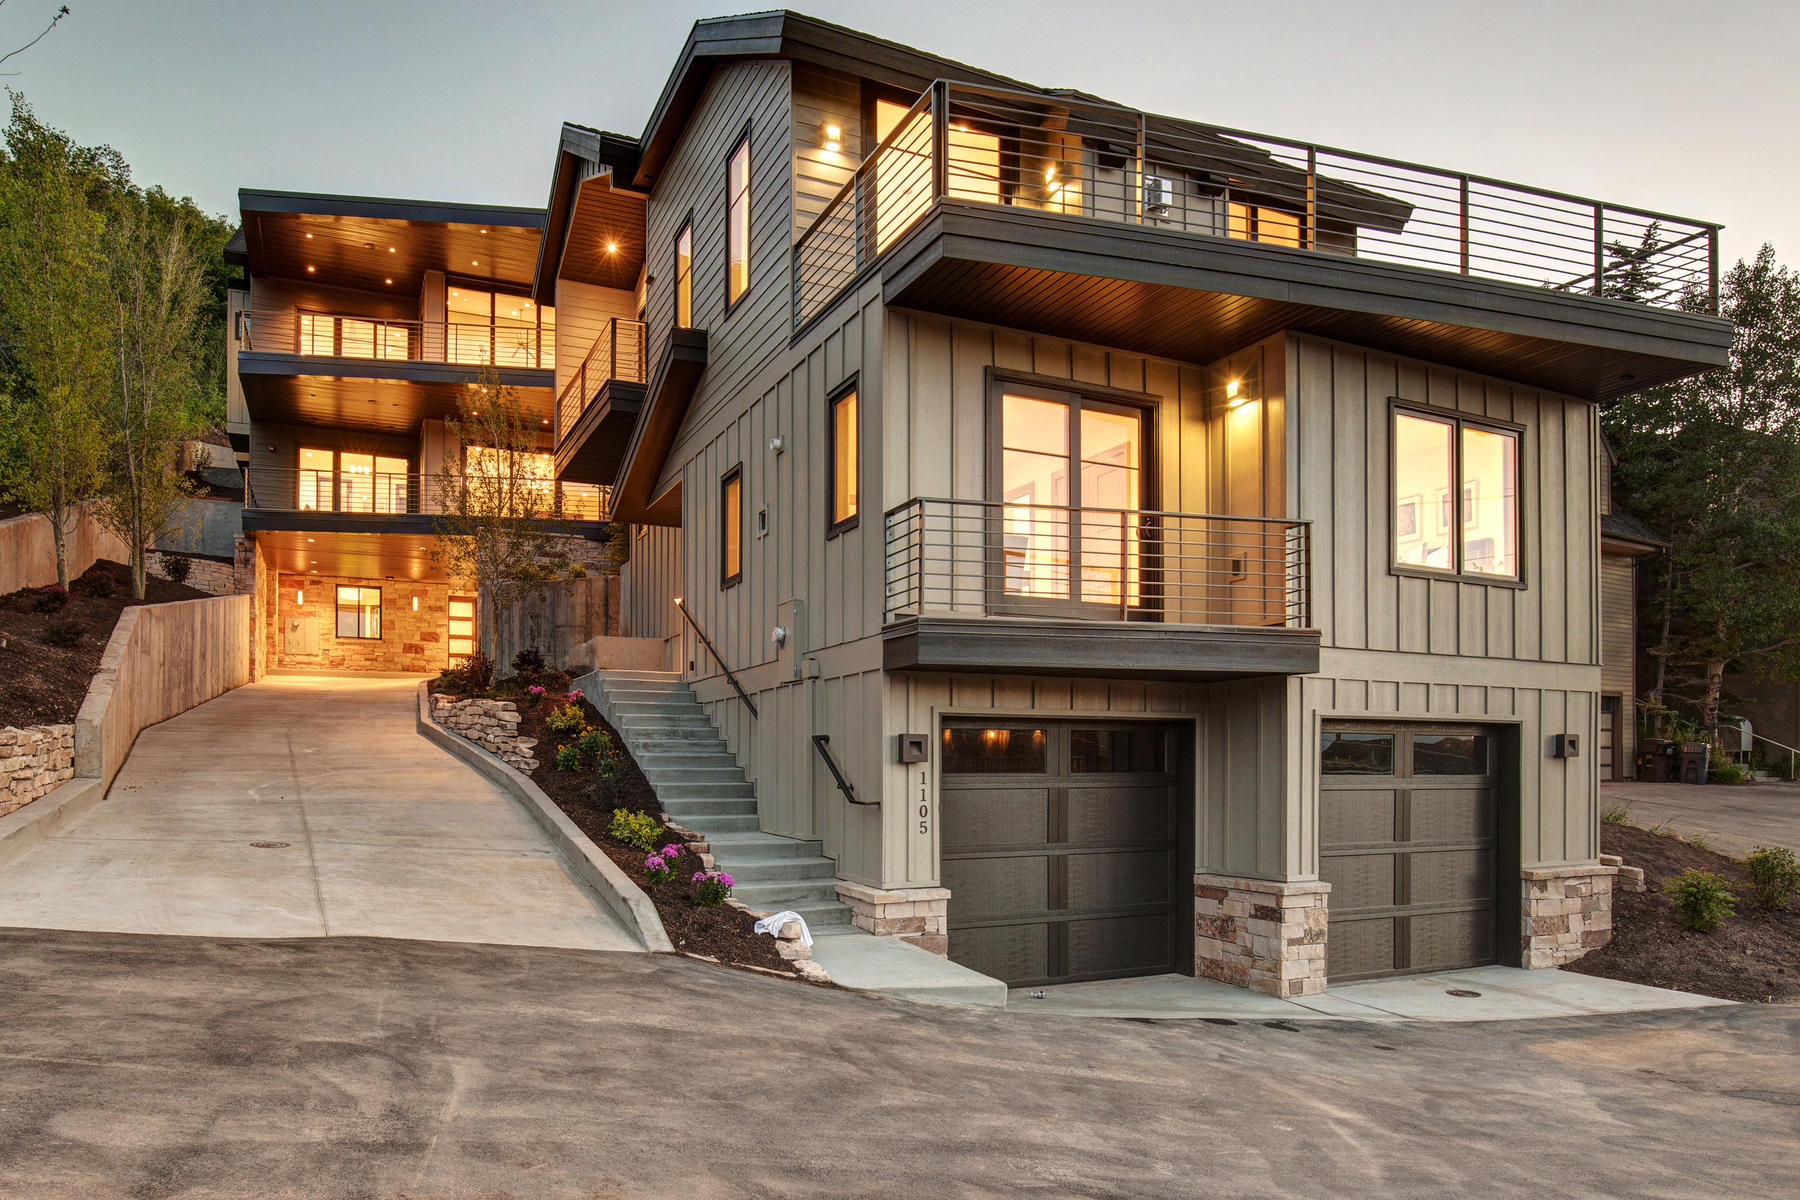 Single Family Home for Sale at New Construction in Old Town 1105 Lowell Ave Park City, Utah, 84060 United States